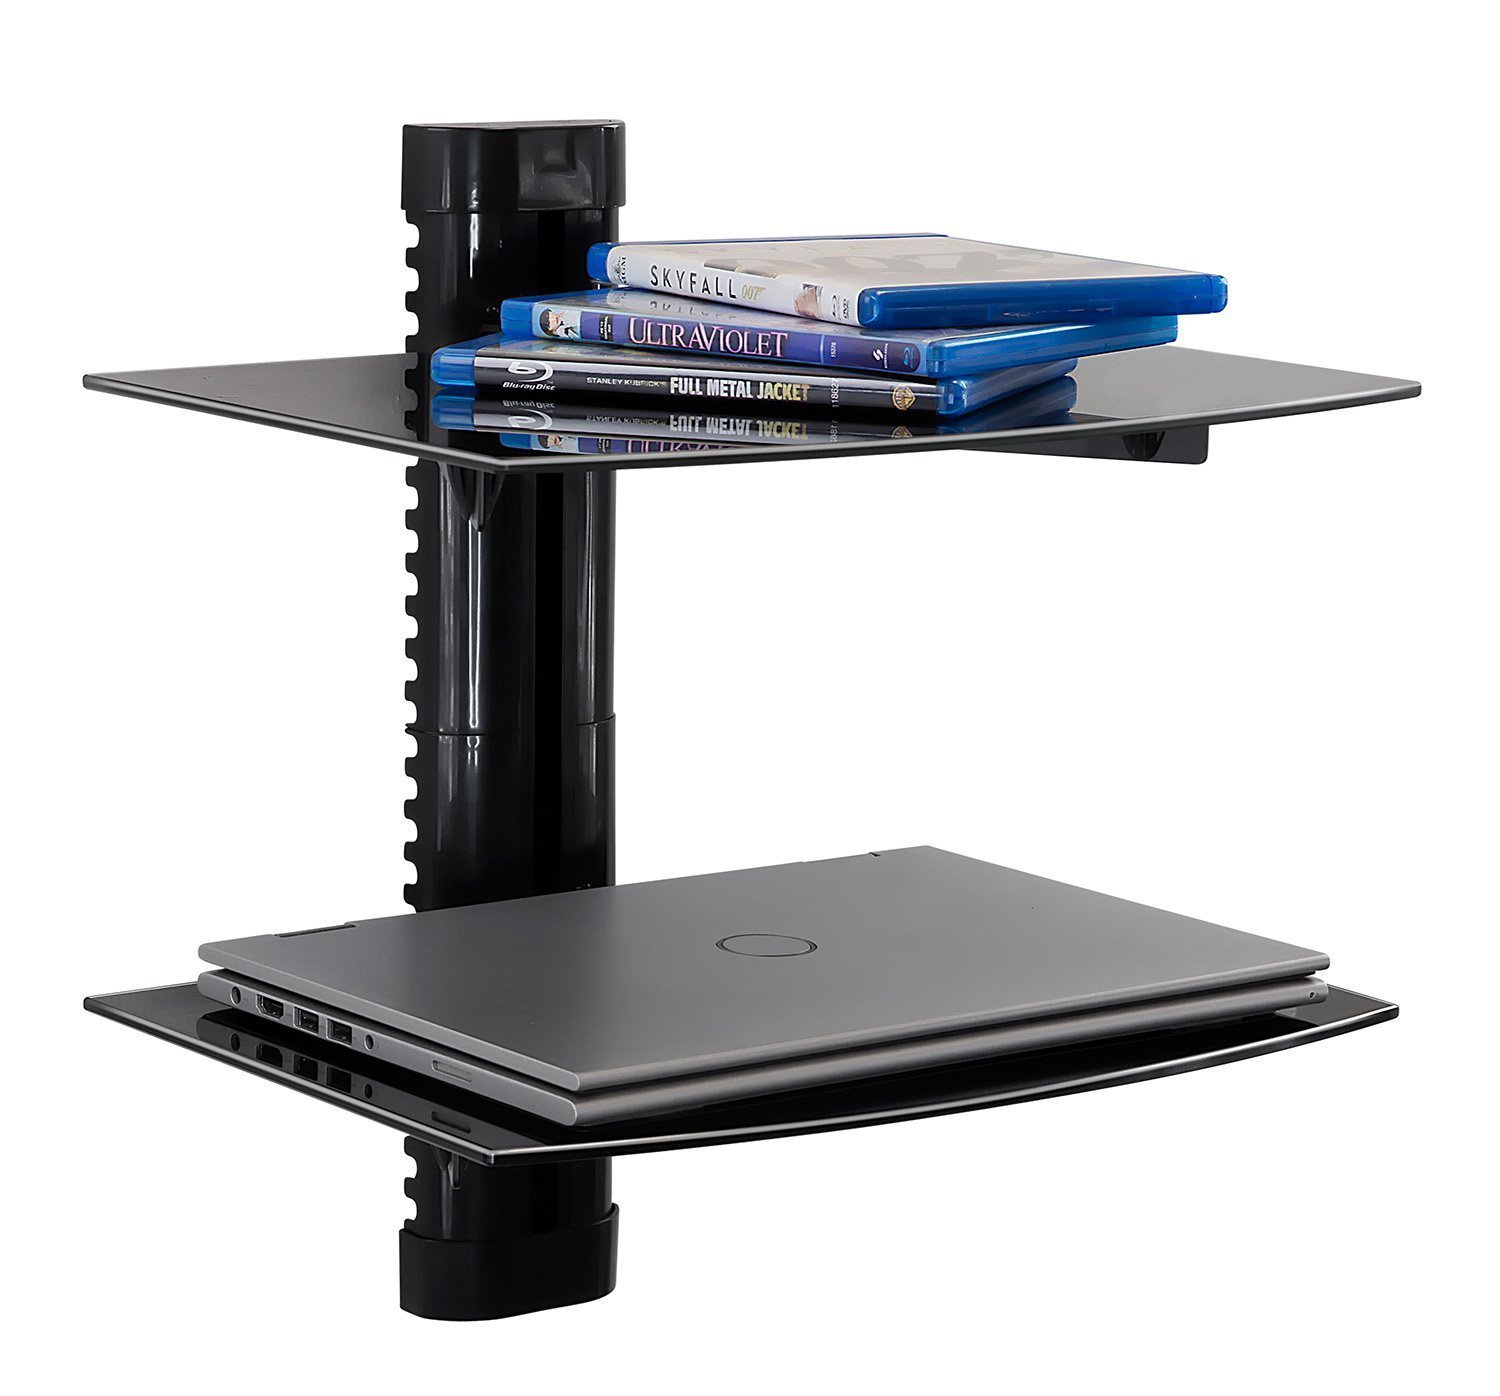 Pesters Floating Wall Mounted Shelf with Strengthened Tempered Glass, Wall Mount Bracket Component Shelf for DVD Players/Cable Boxes/Games Consoles/TV Accessories (US STOCK) (2 Shelf, Black) by Pesters